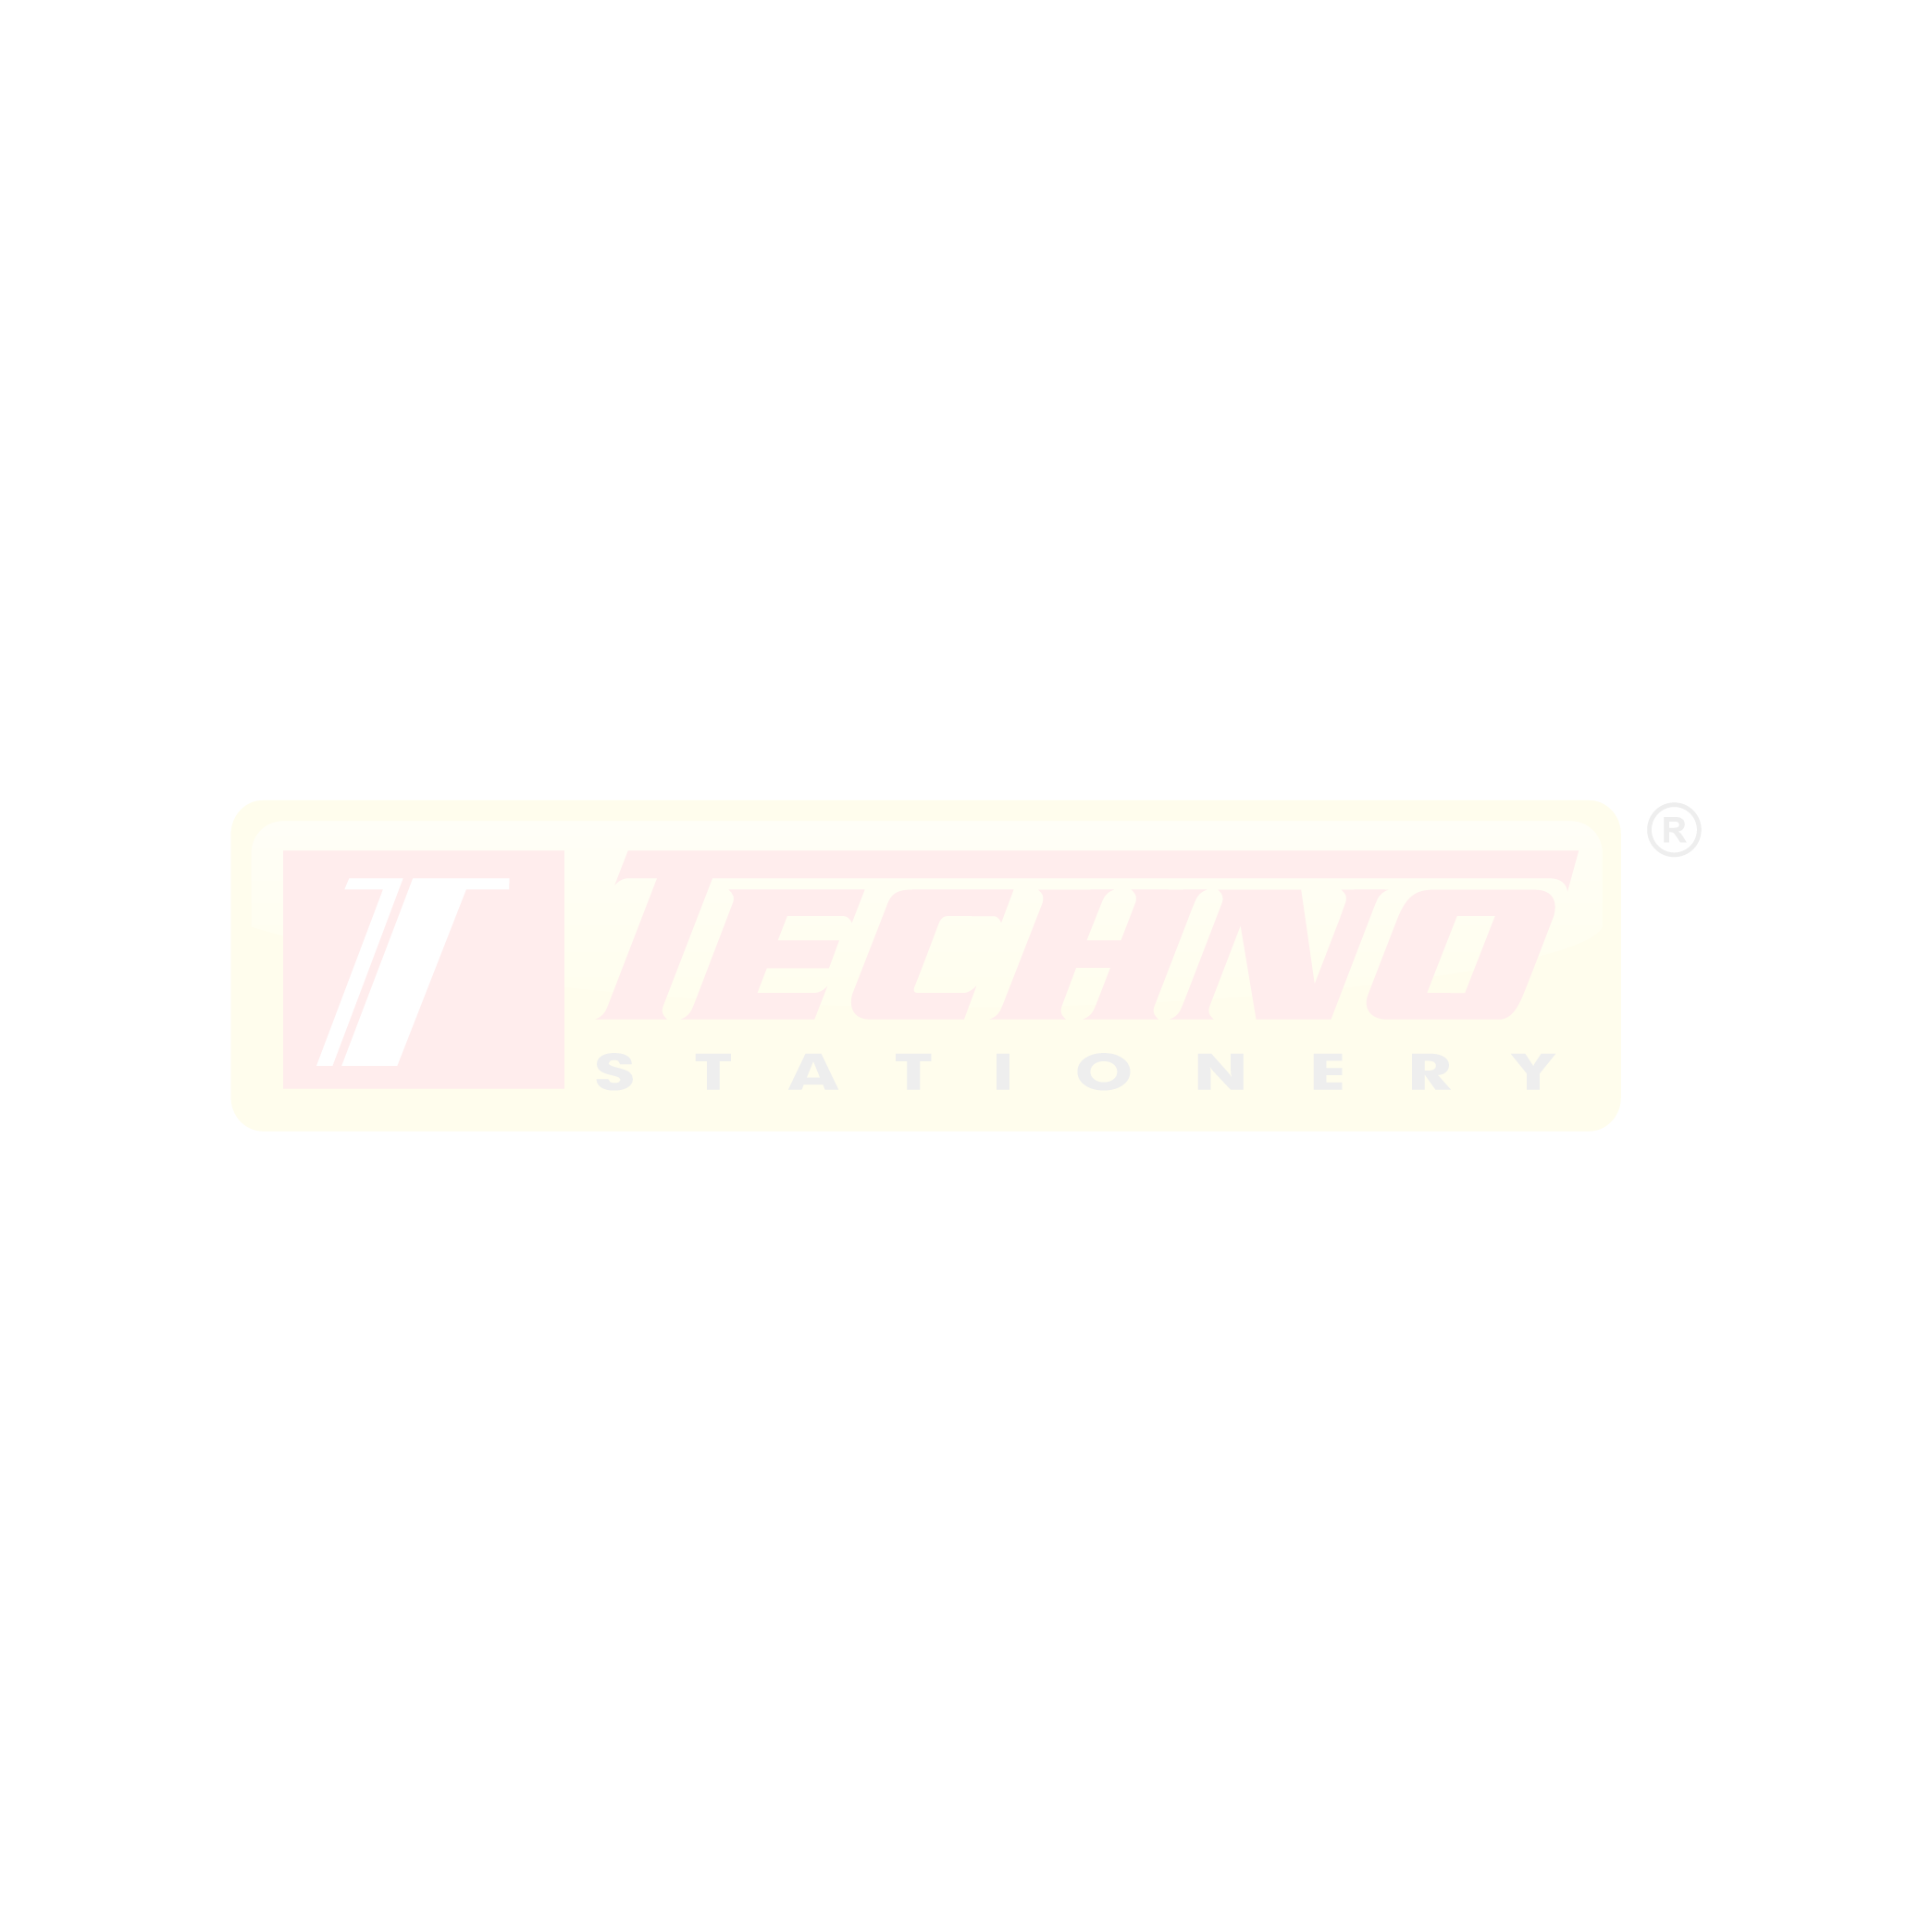 """ETUI MINES 10 MINES 02mm SOUS BLISTER """"MAPED"""" REF: 134210"""